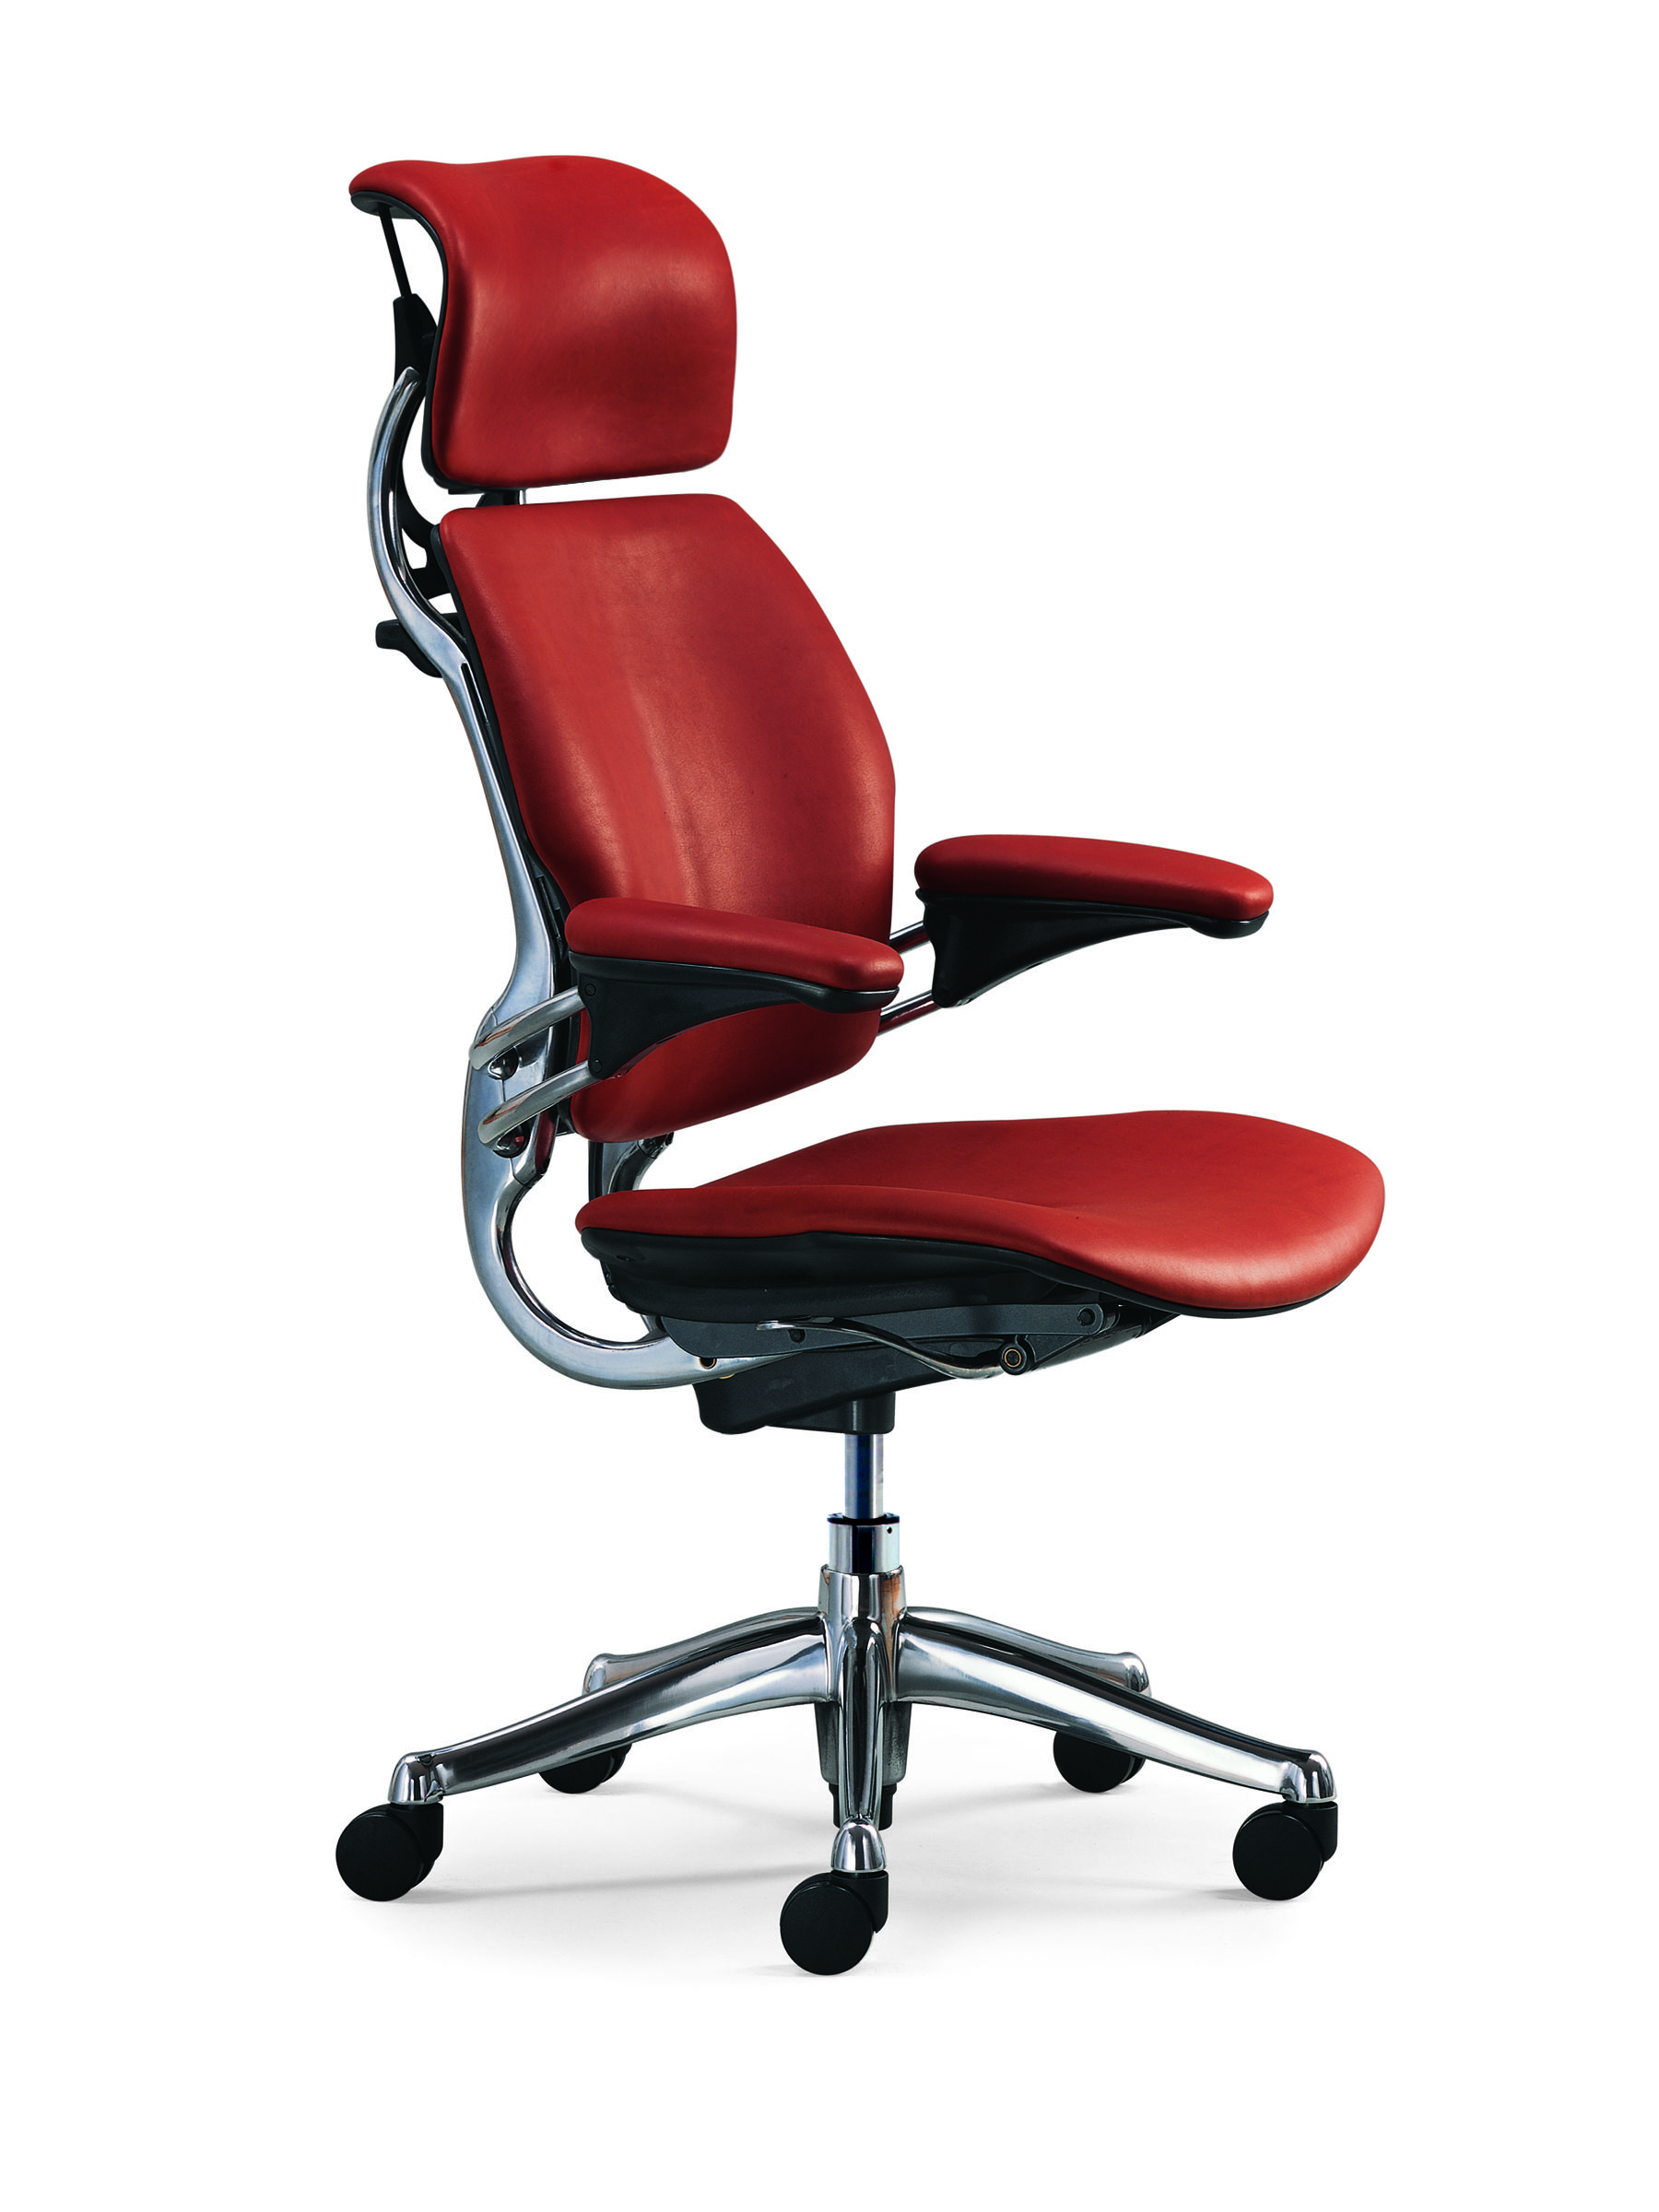 Freedom Headrest Humanscale Niels Diffrient Red Bright